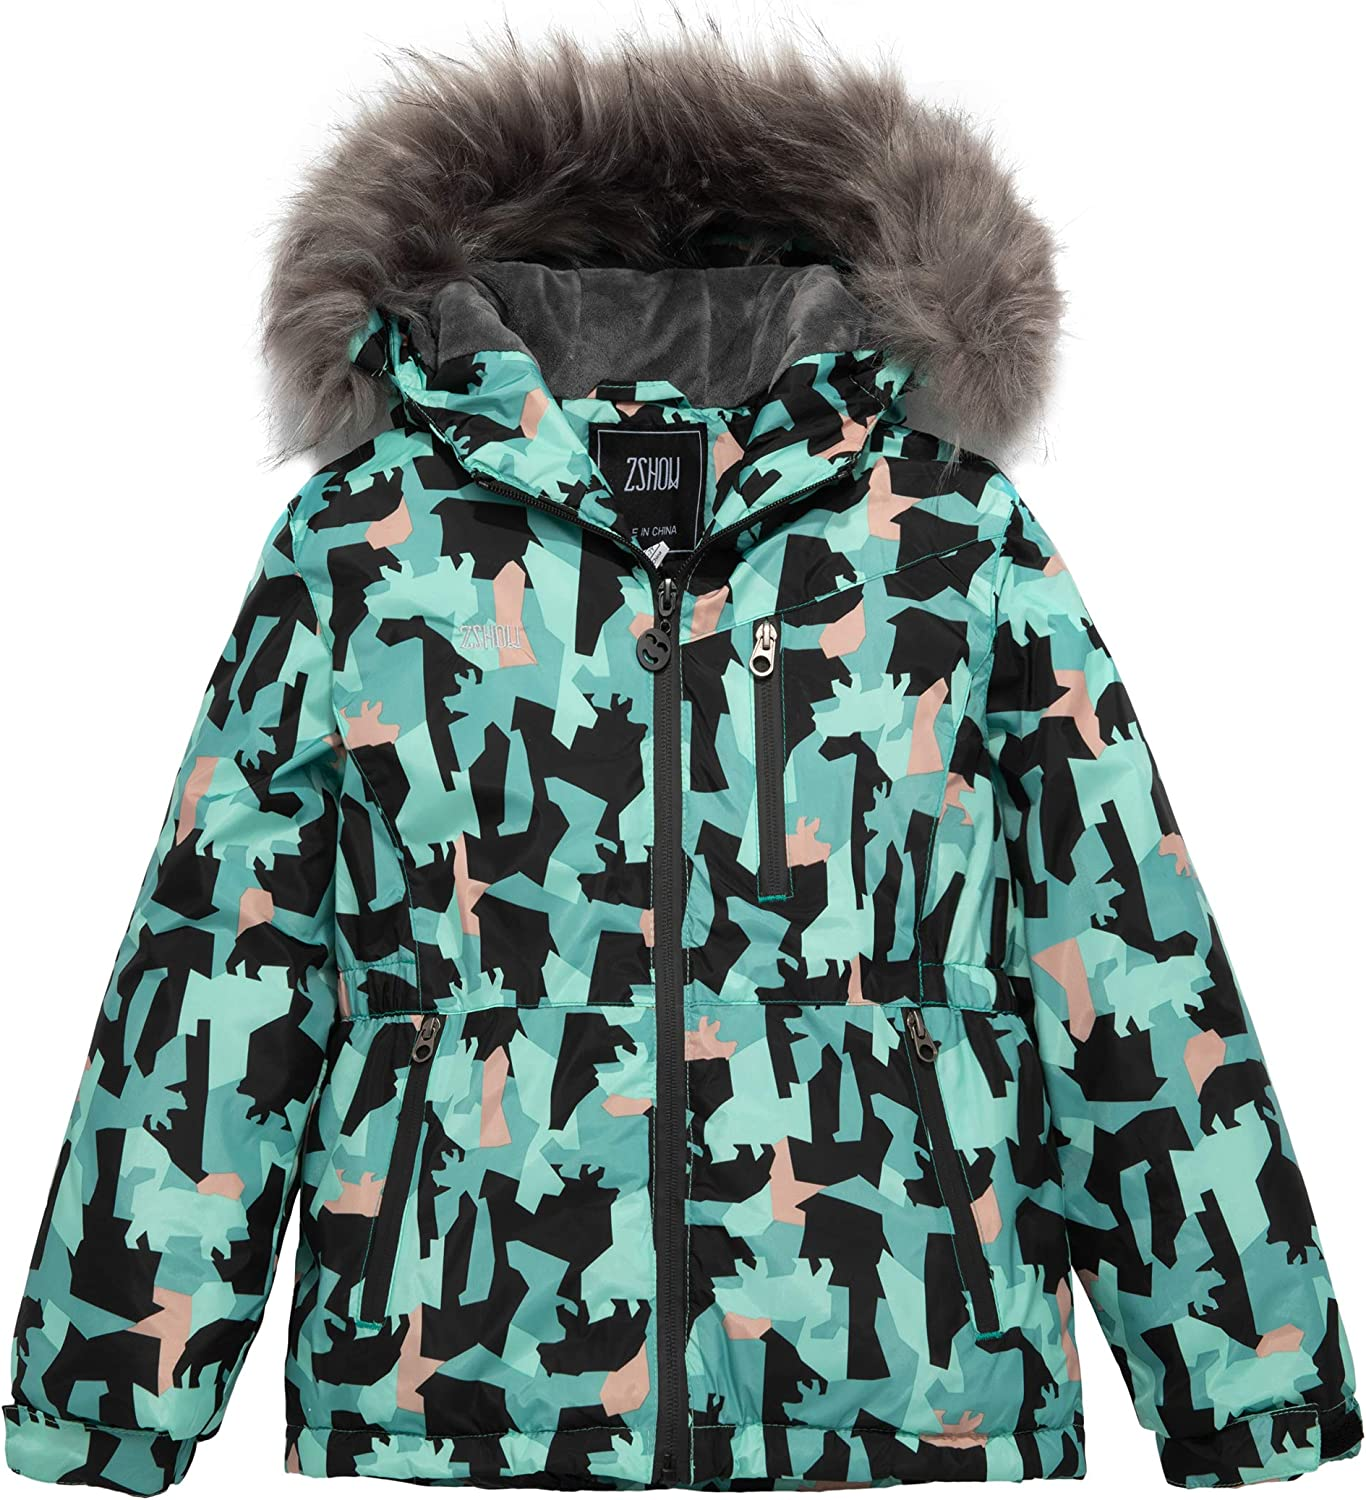 ZSHOW Girls' Mountain Waterproof Ski Jacket Warm Winter Snowboarding Coat